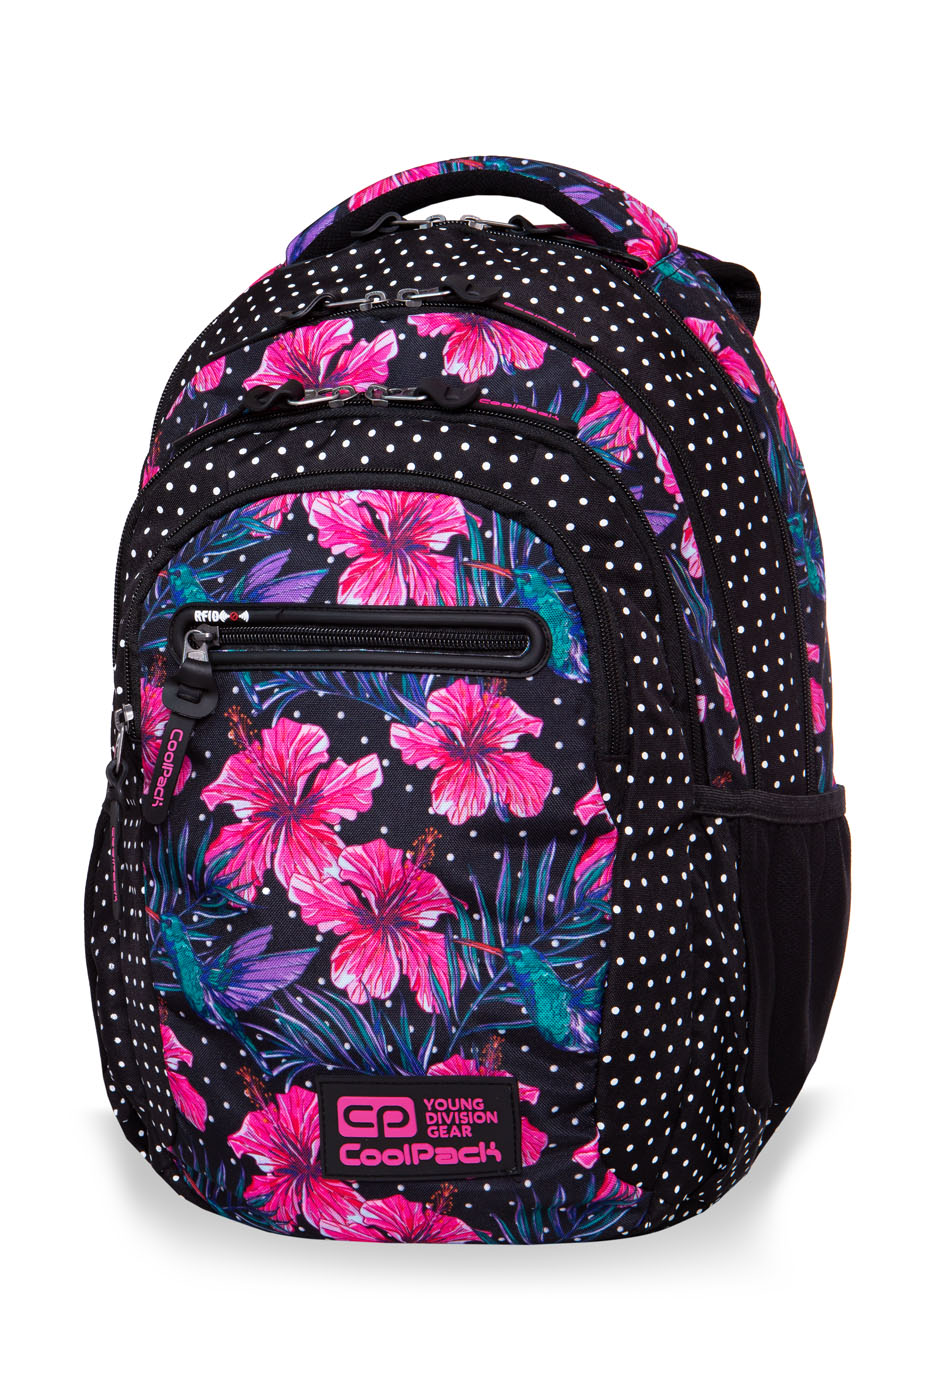 Coolpack - college tech - youth backpack - blossoms